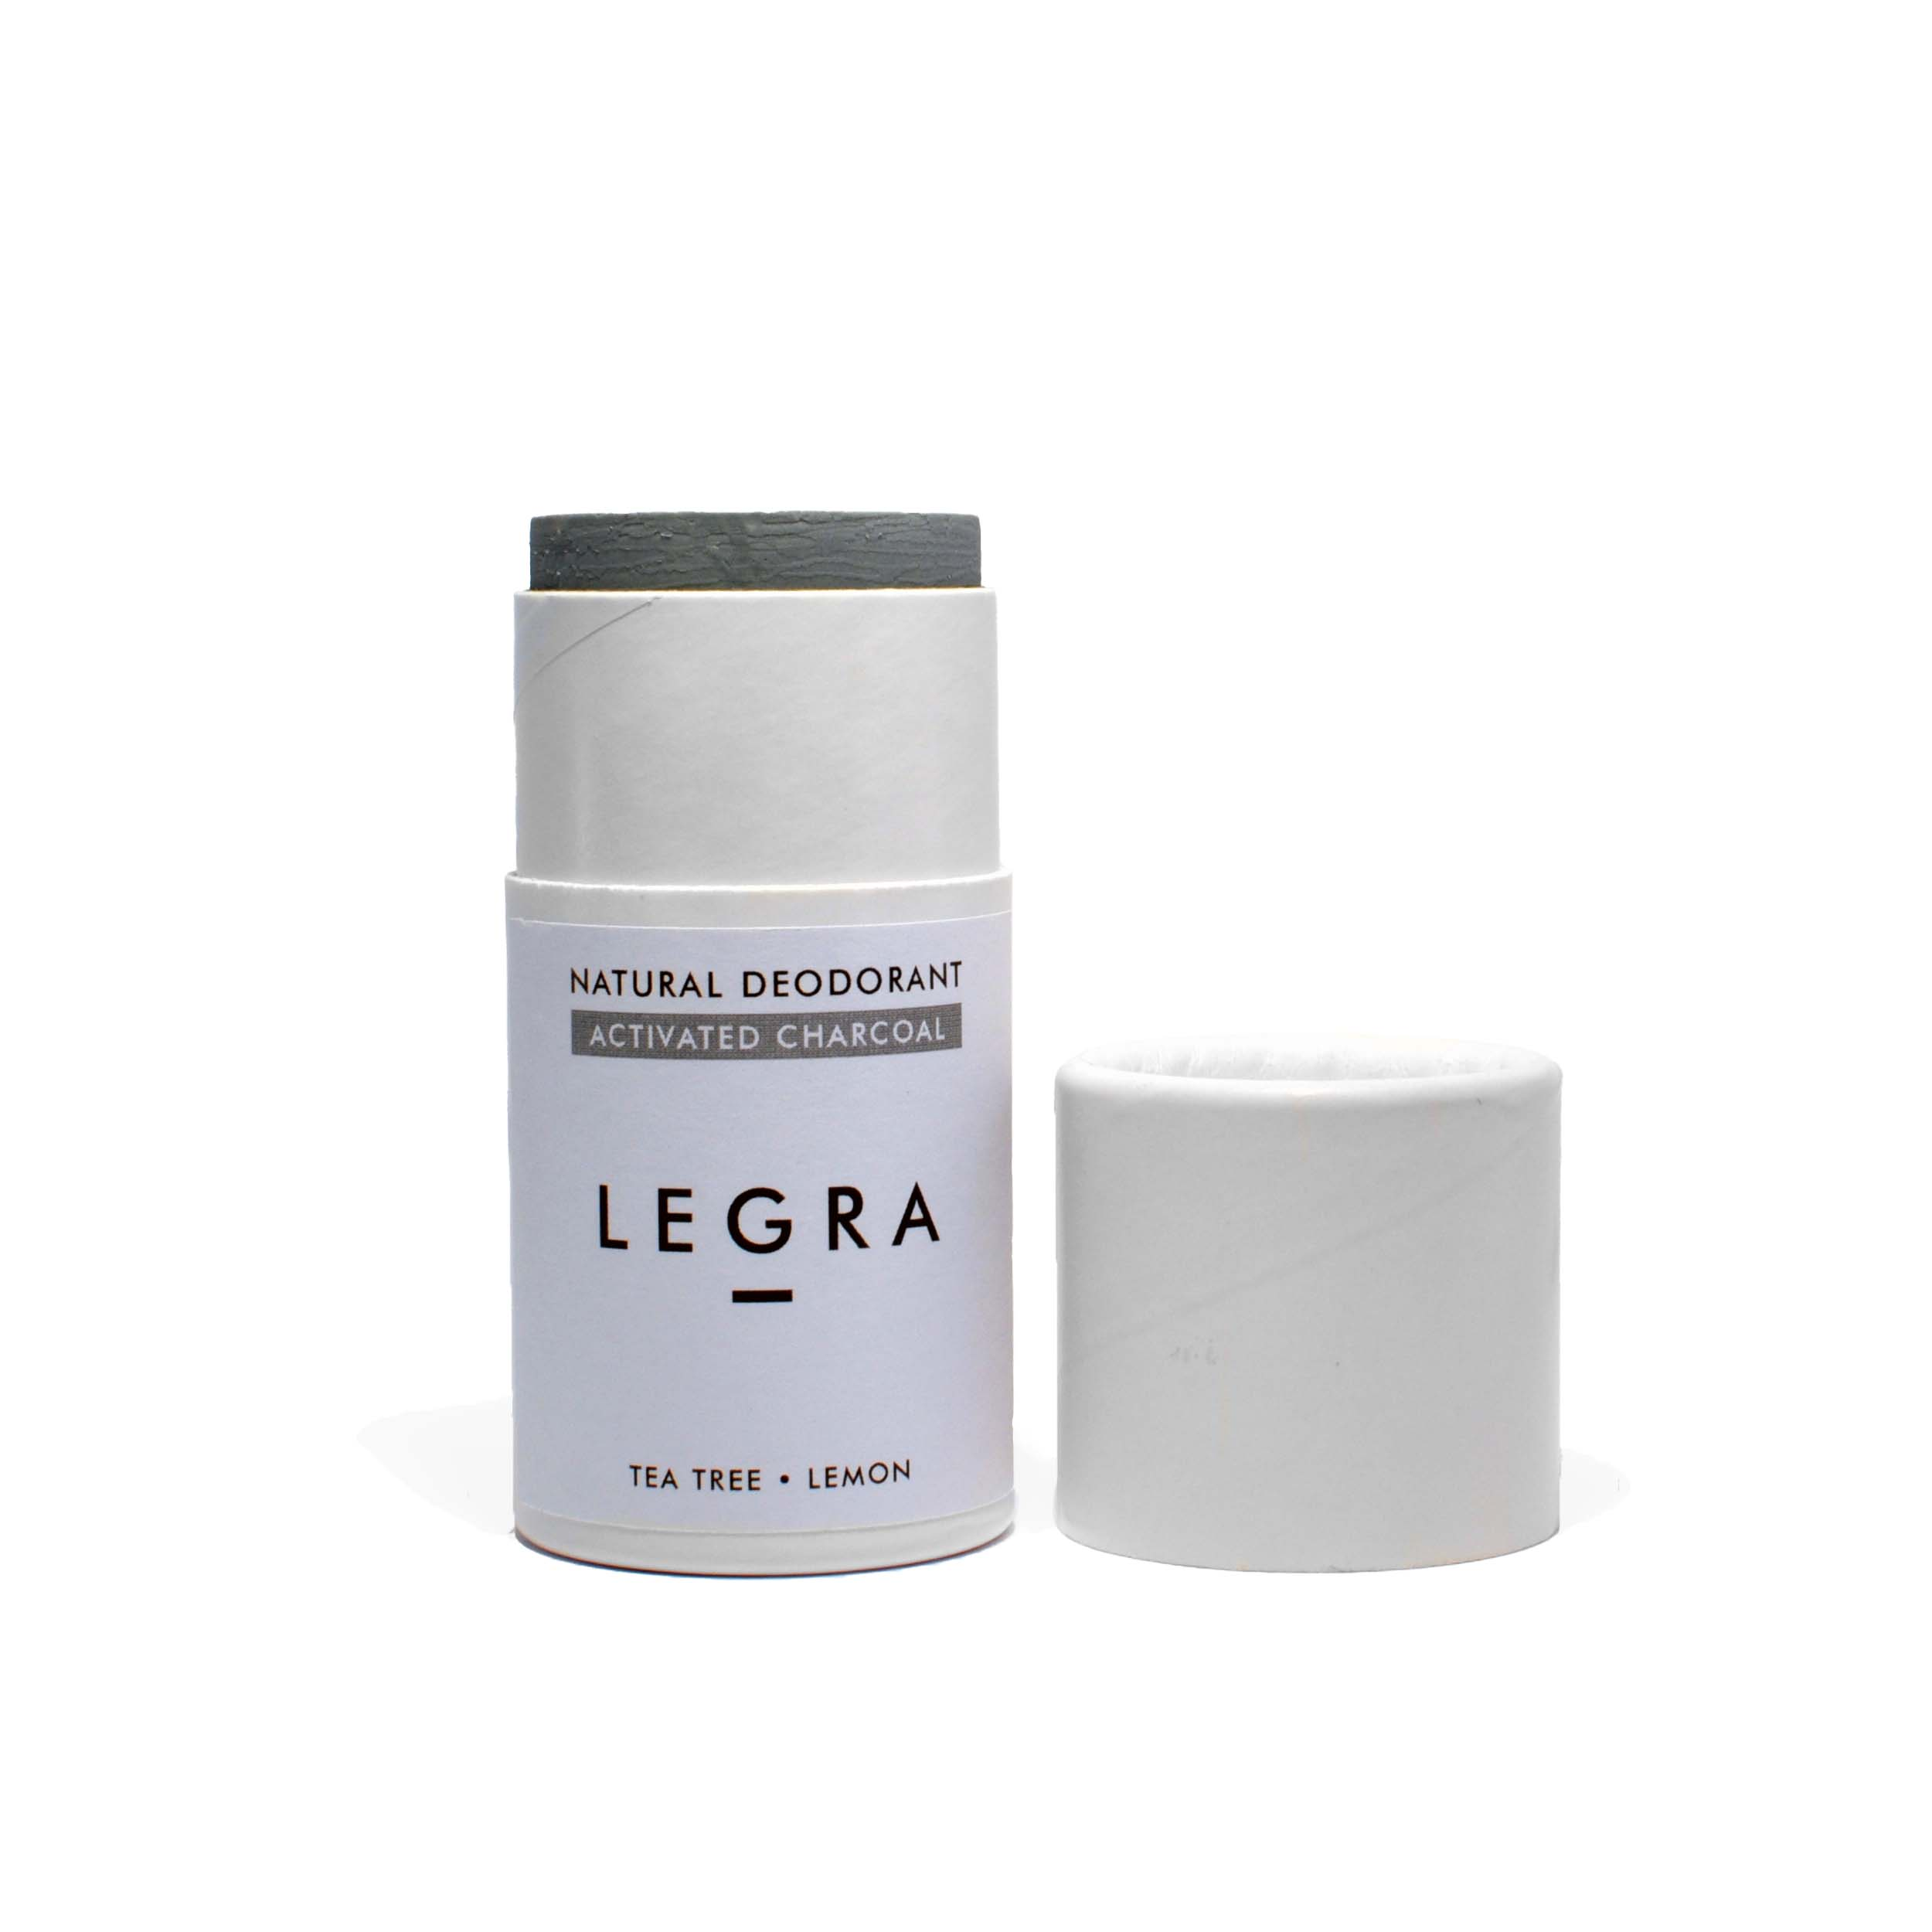 Natural Deodorant Stick with Bamboo Activated Charcoal, Tea Tree & Lemon